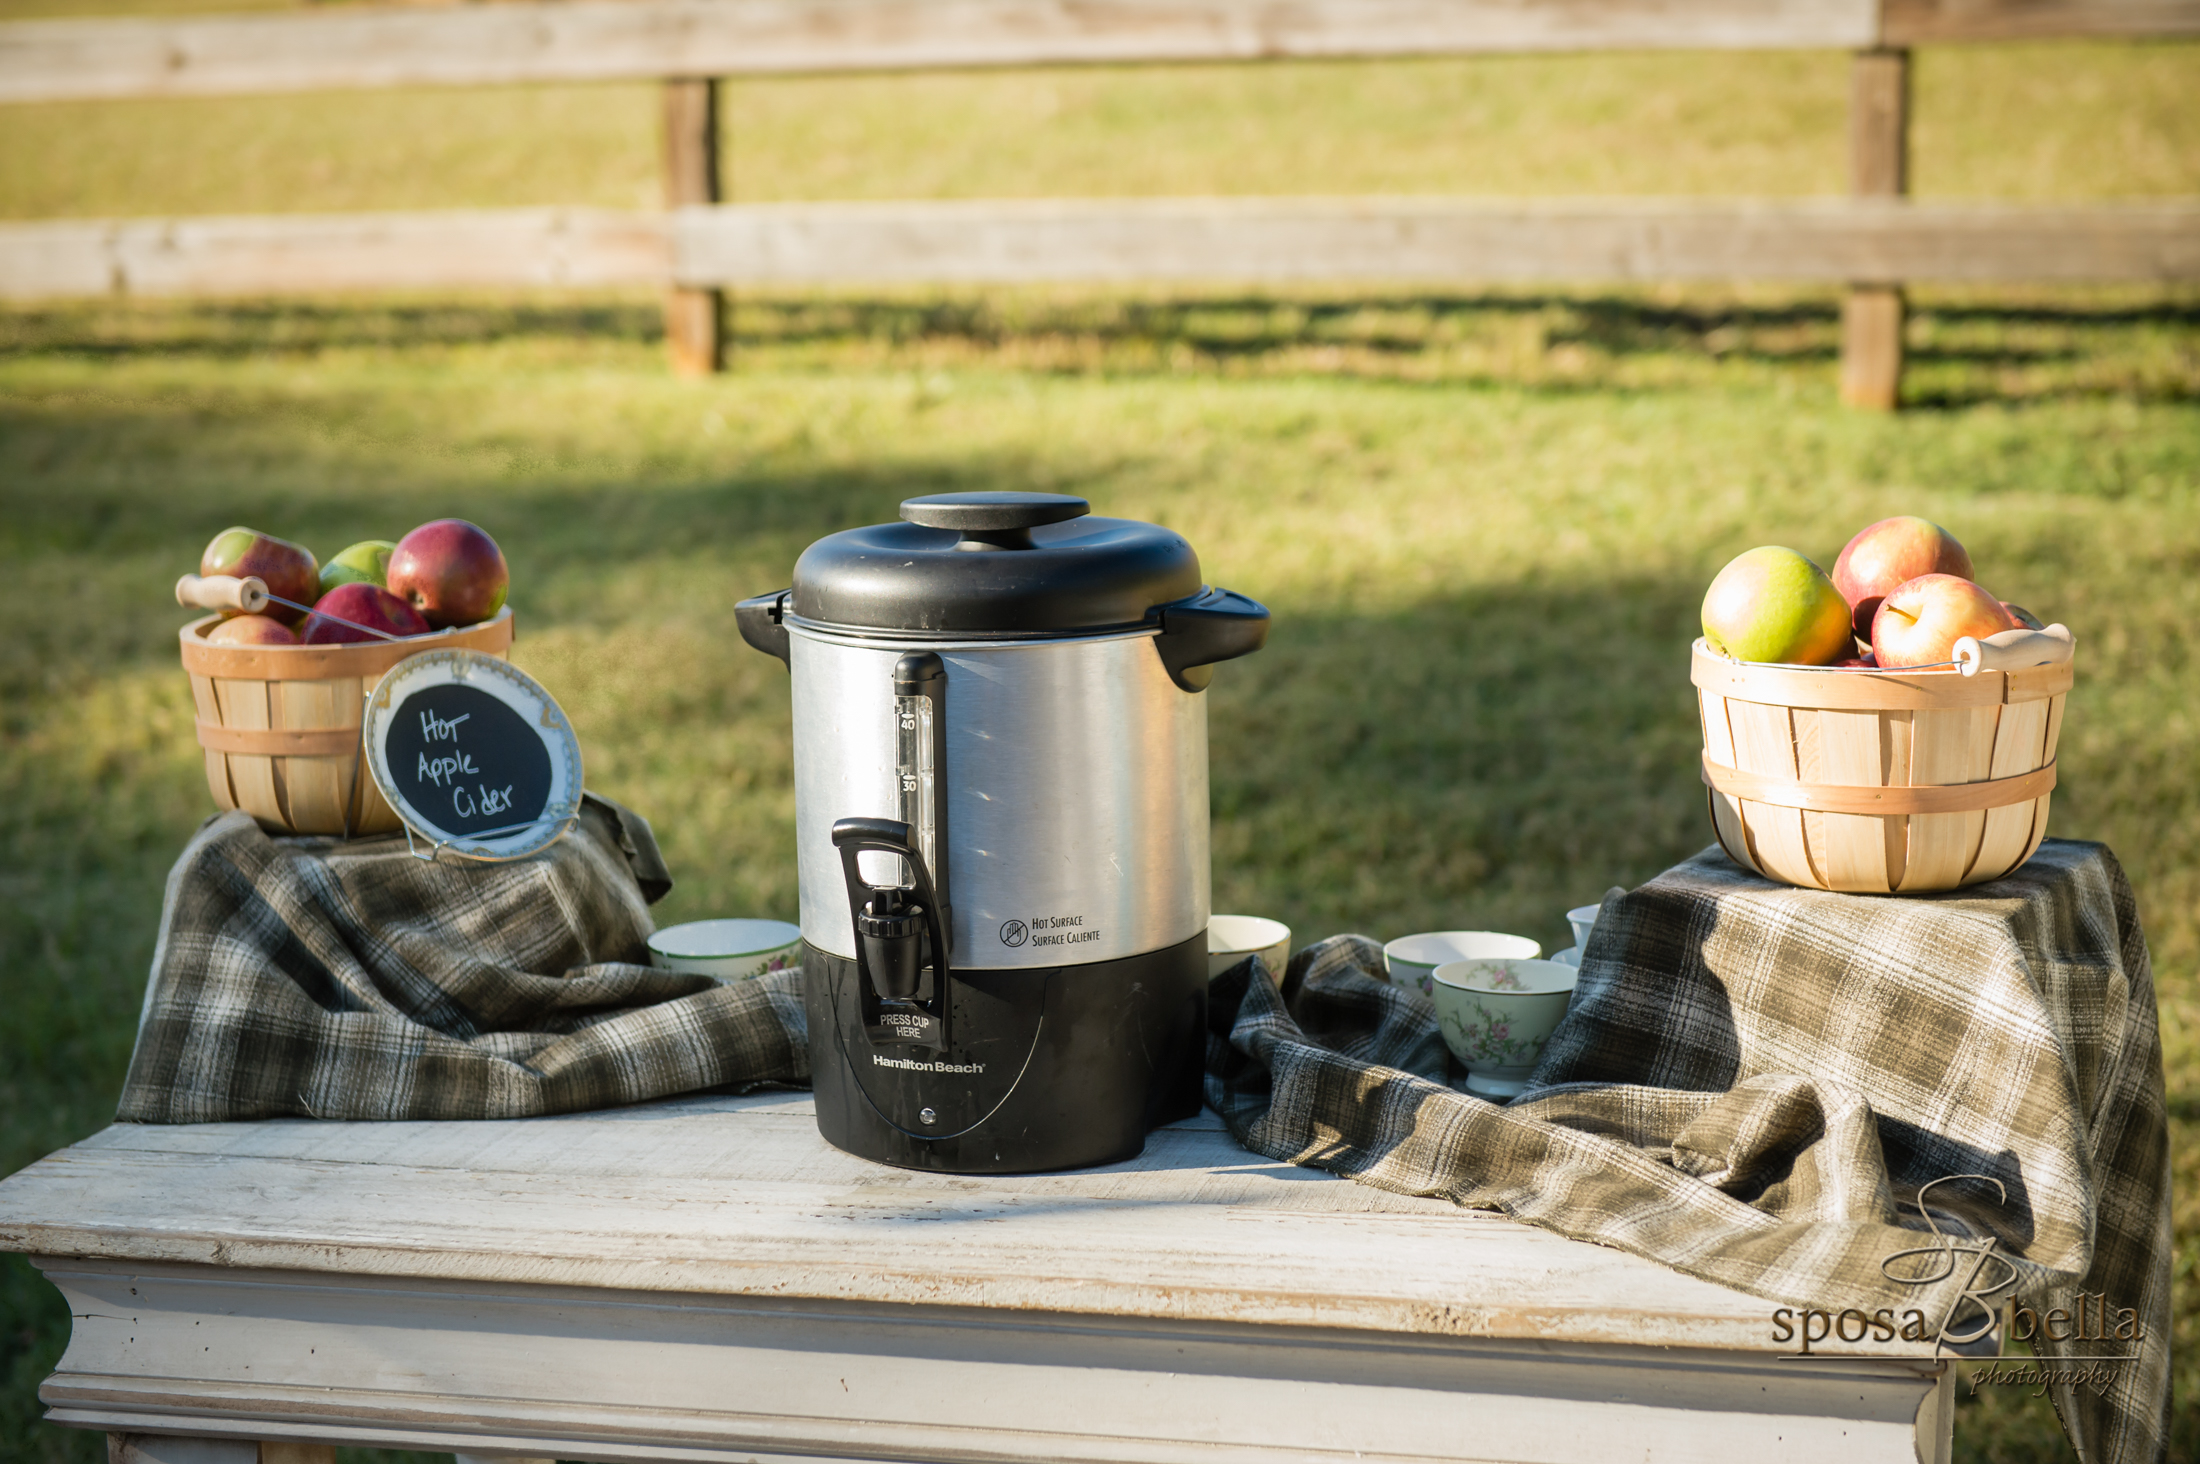 What is a Fall day without Hot Apple Cider! We love that Ashley & Josh had this preceremony delight to help keep guests warm.